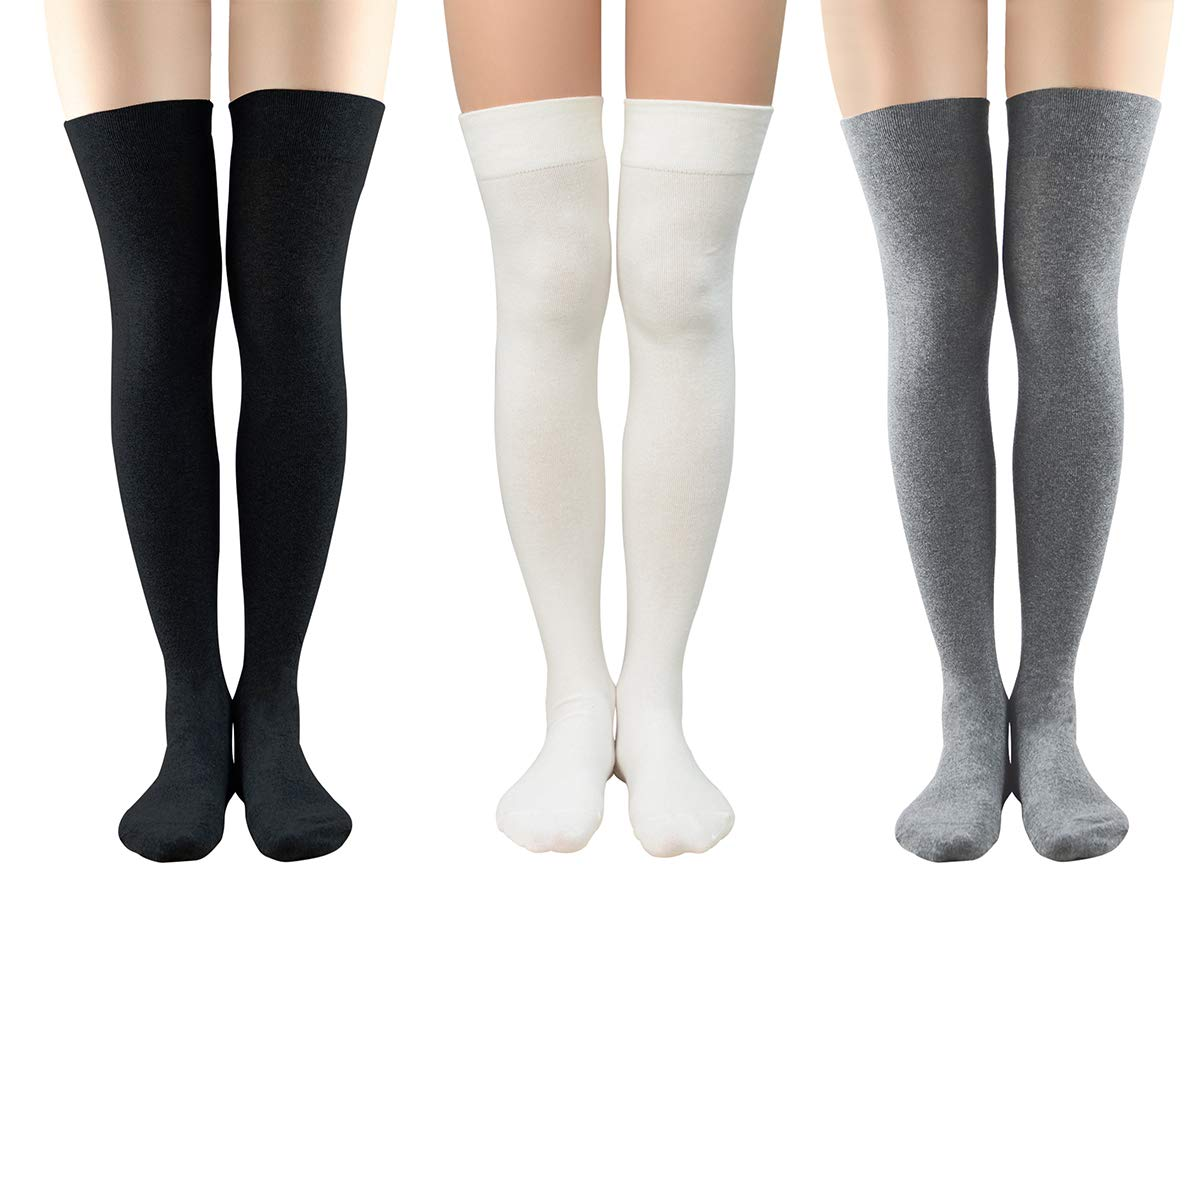 Durio Womens Thigh High Socks Thigh Highs Solid Socks for Women Over the Knee Sock Non Slip Stockings A 3 Pack Black & White & Light Grey One Size